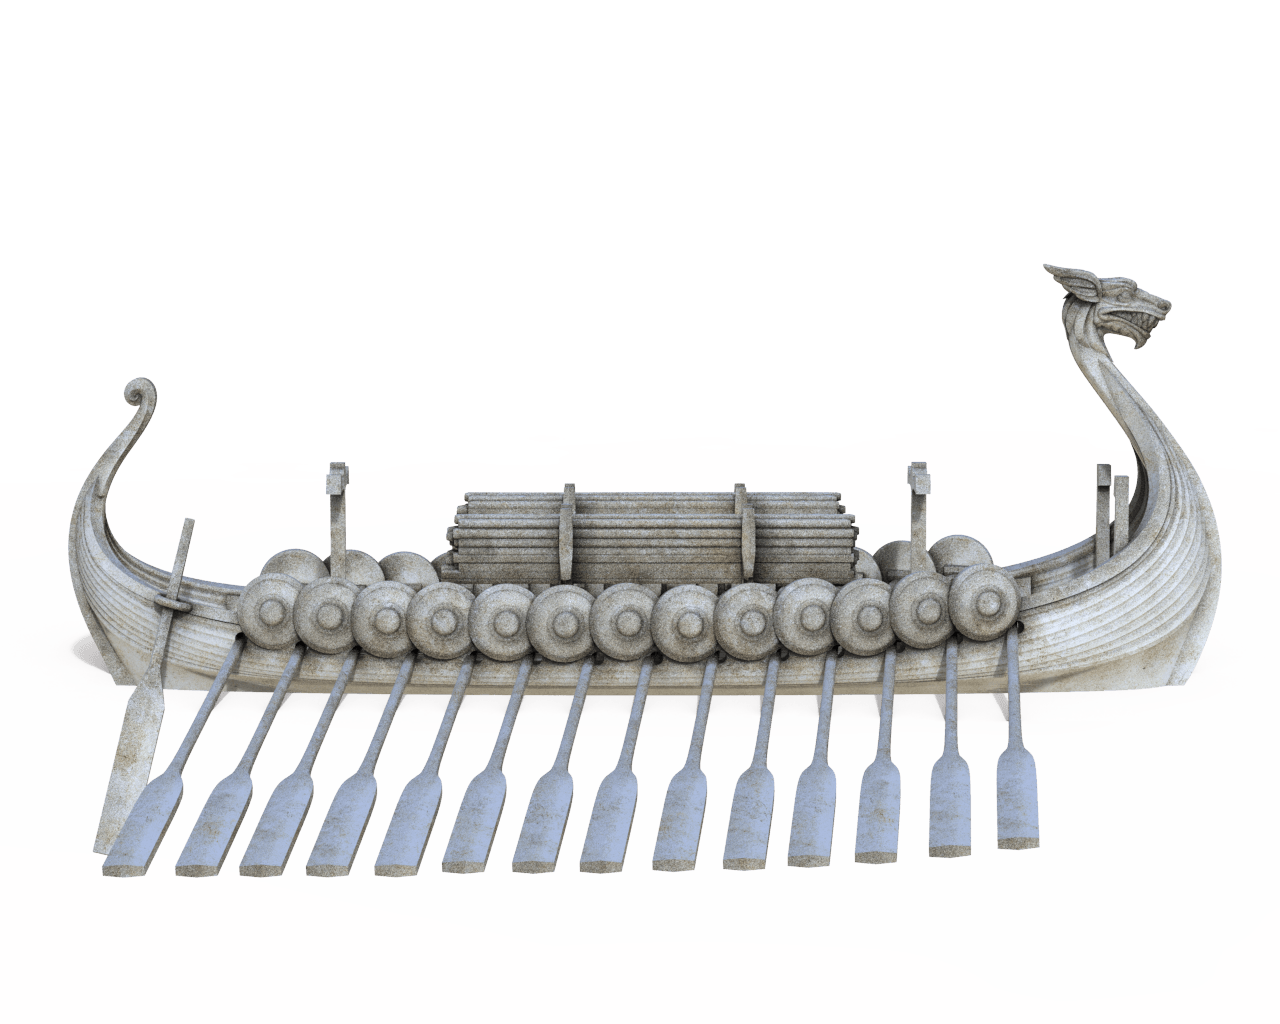 3d Printable Viking Longship Ready To Download And Print